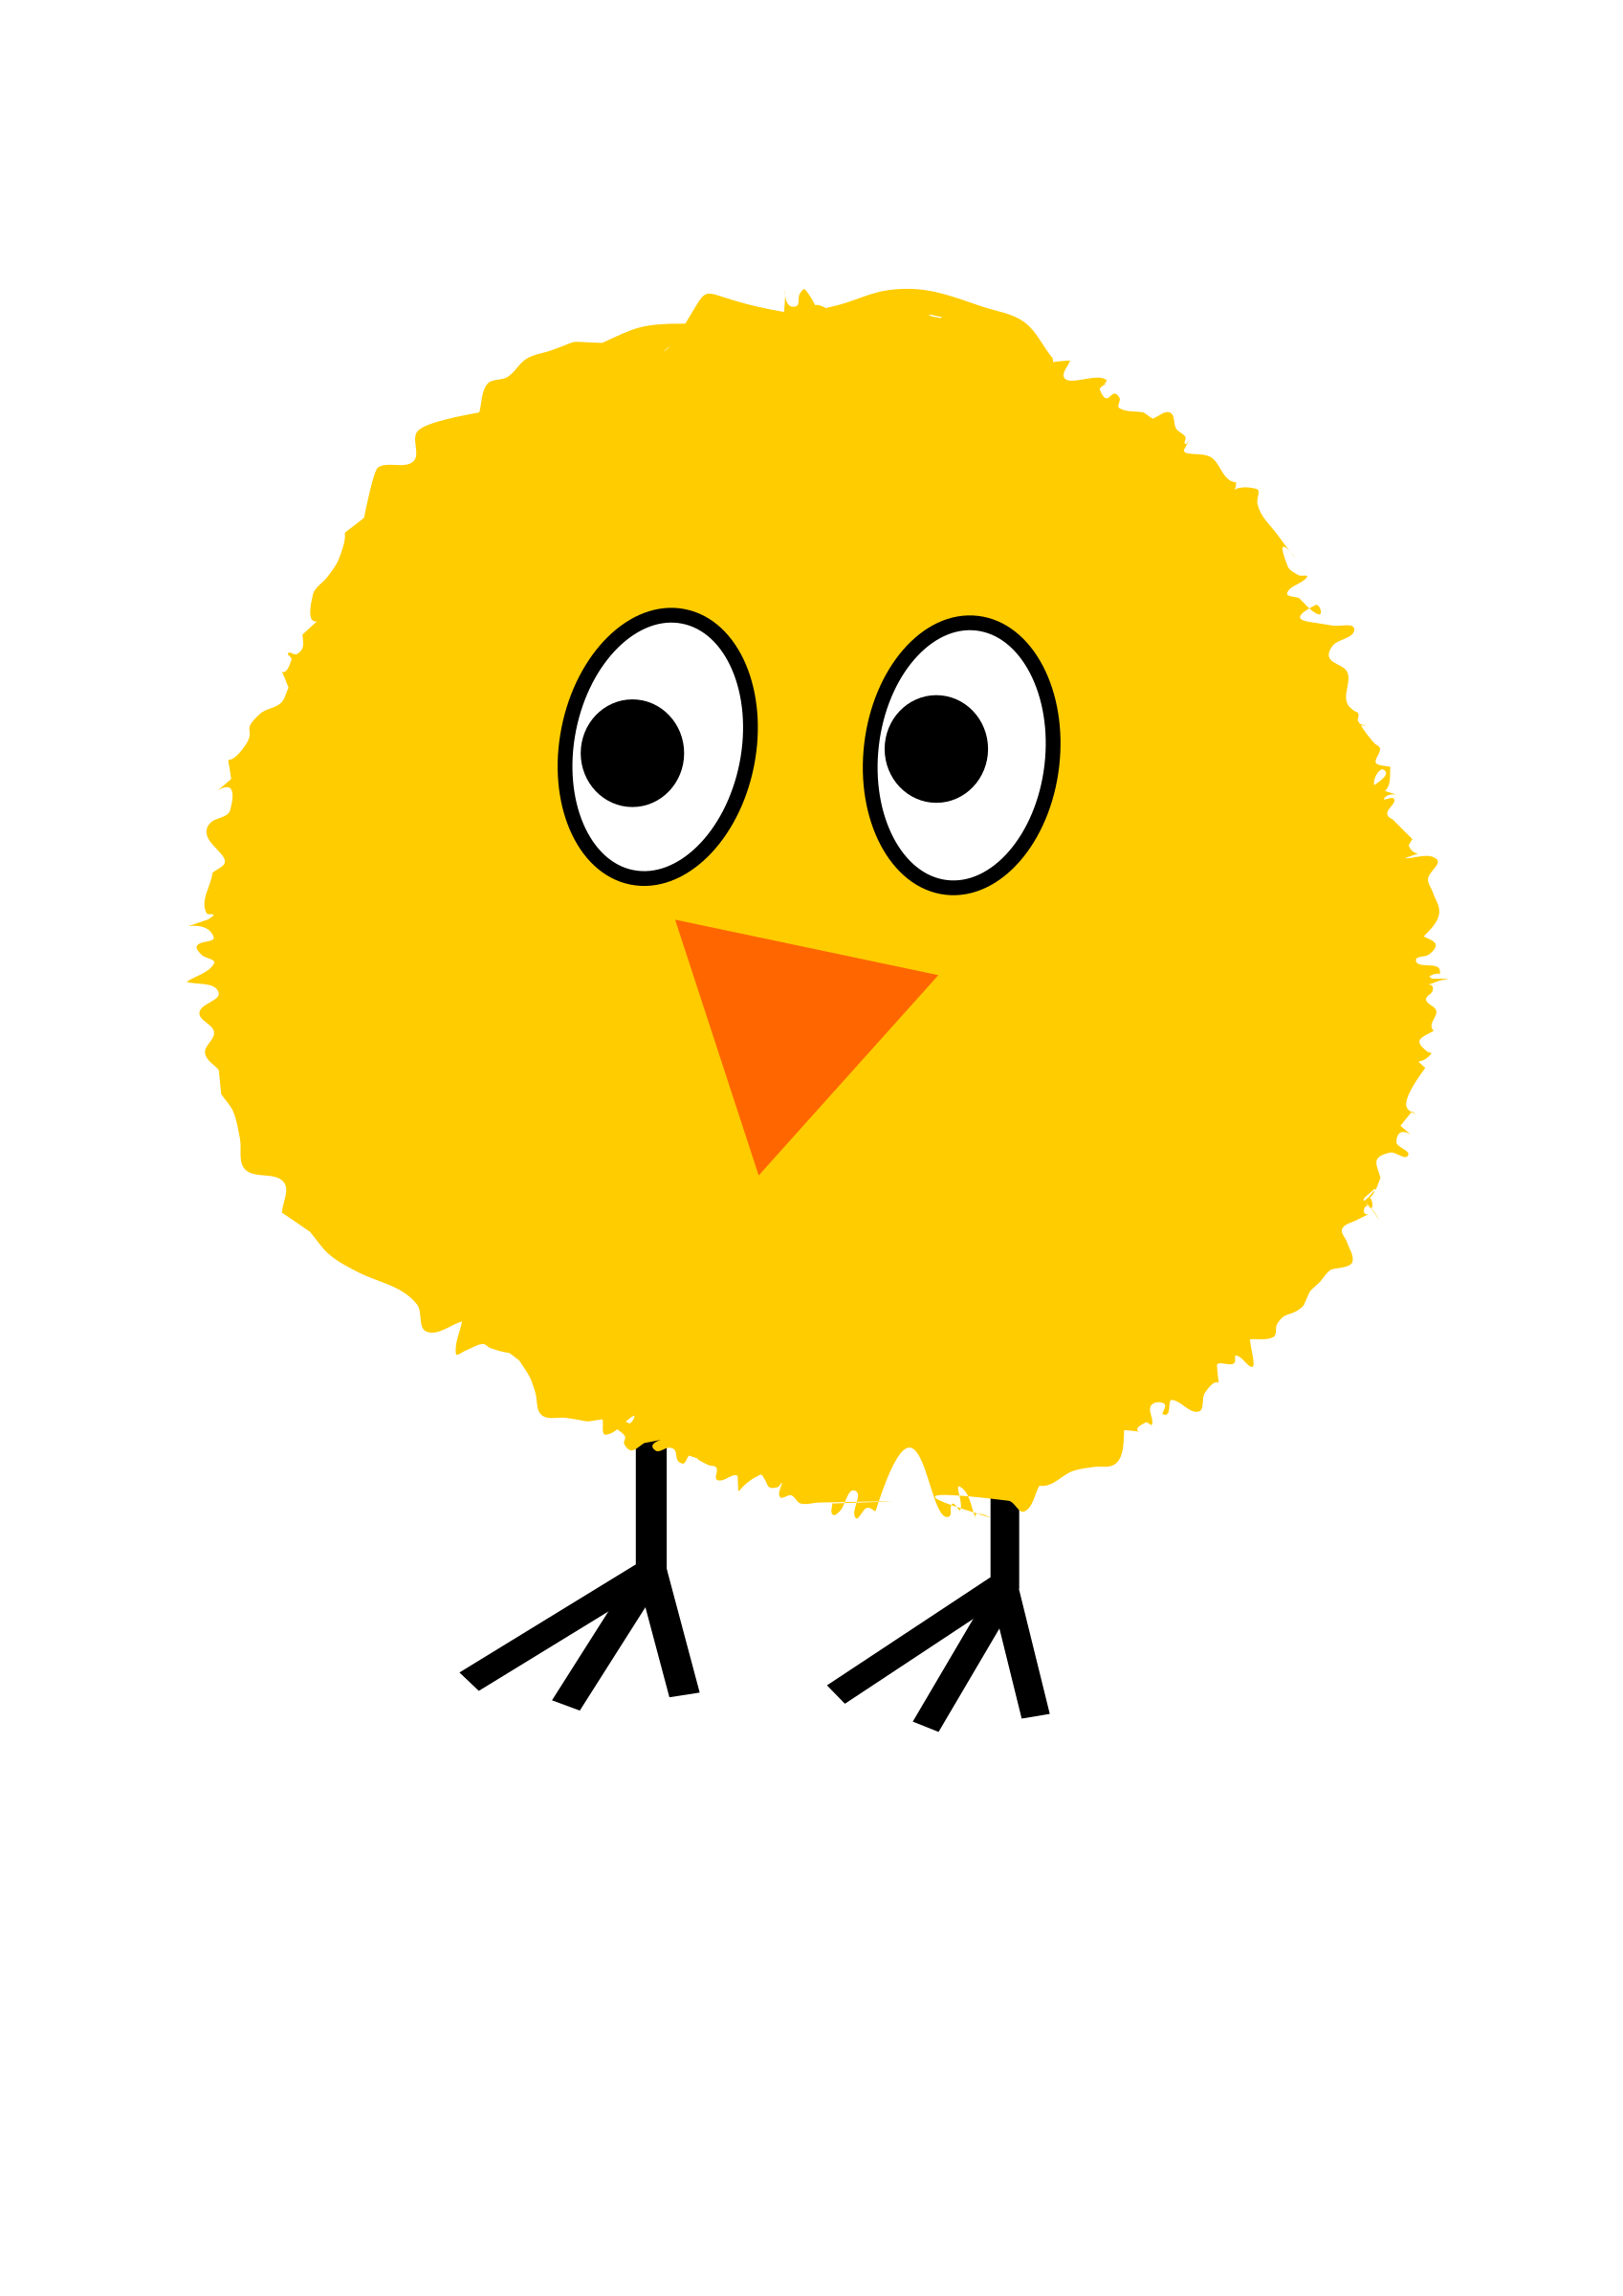 picture Big image png. Chick clipart fluffy.